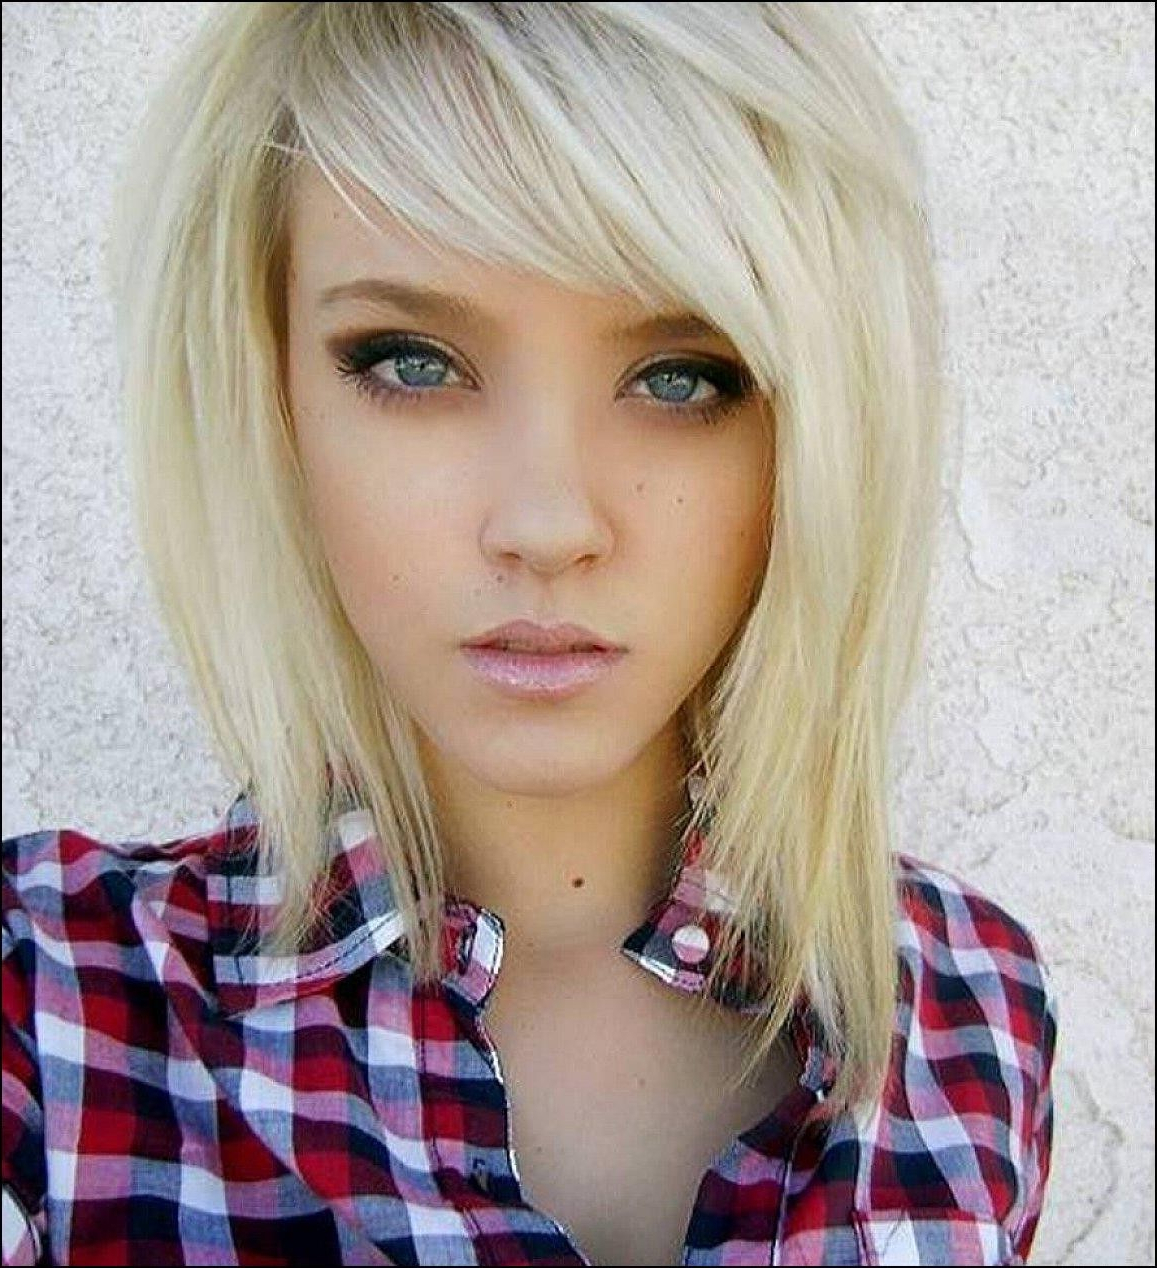 Choppy Layered Haircuts With Side Bangs   Haircut Soon   Pinterest With Regard To Short Haircuts With Side Fringe (View 20 of 25)